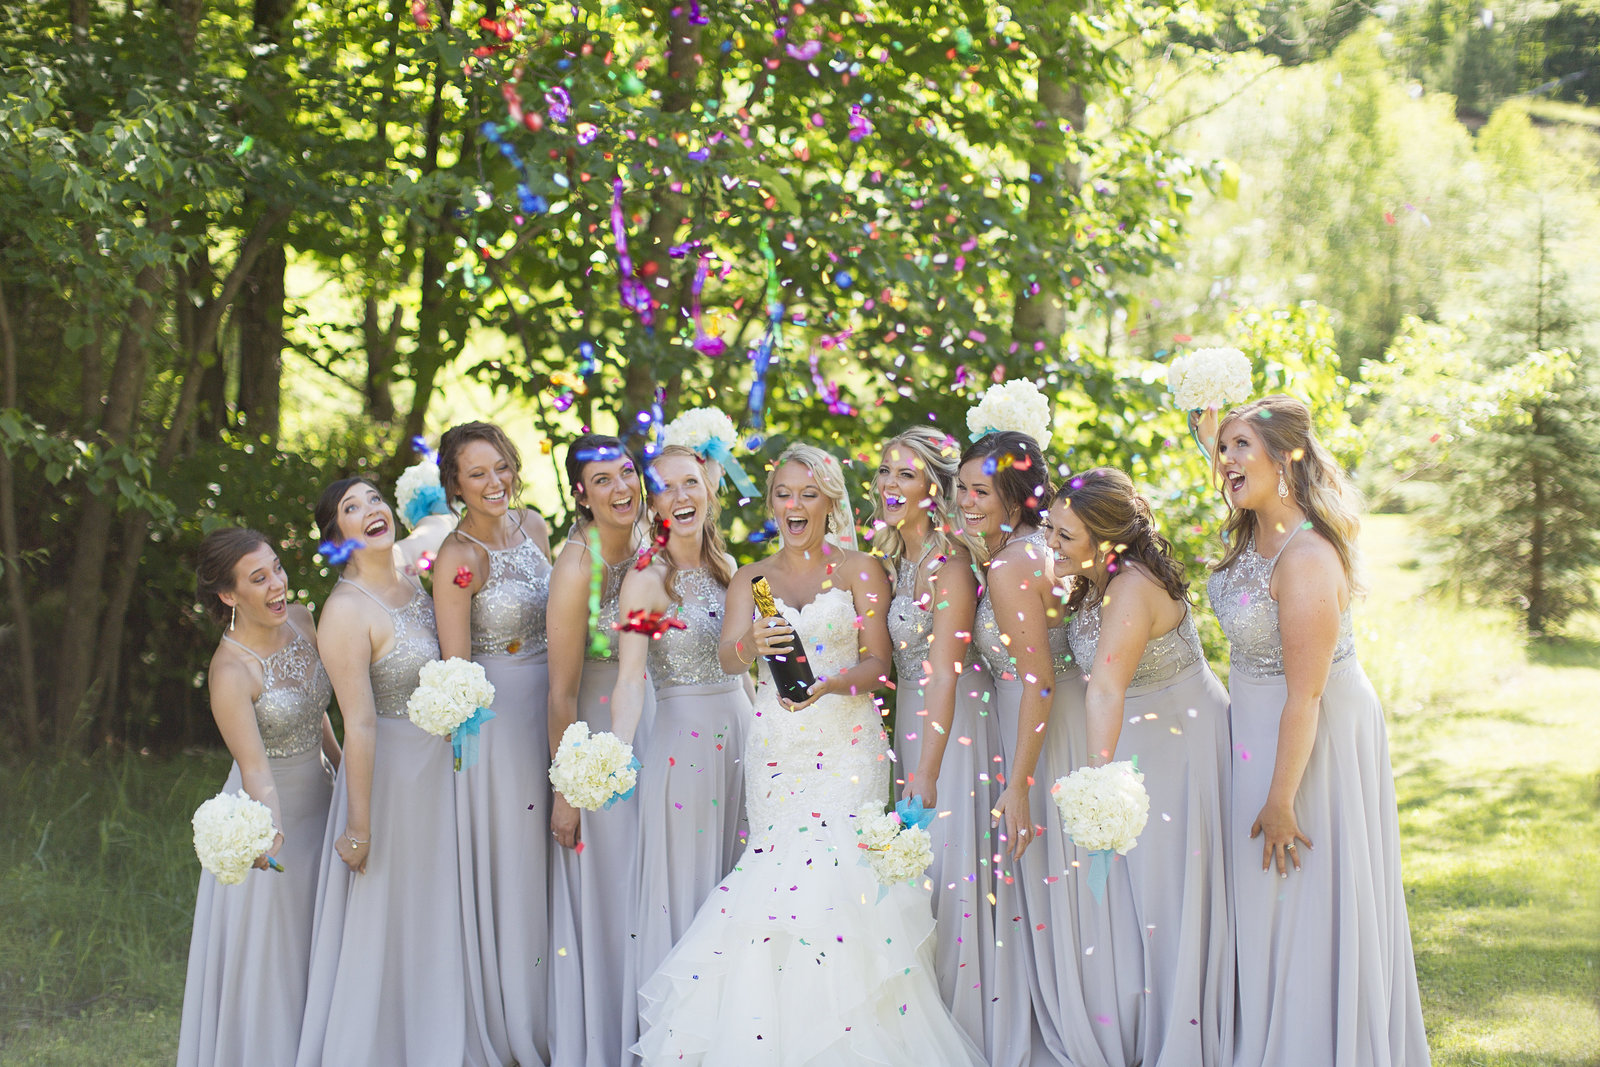 Confetti Popper Wisconsin Wedding Photographer Photos by Ciera